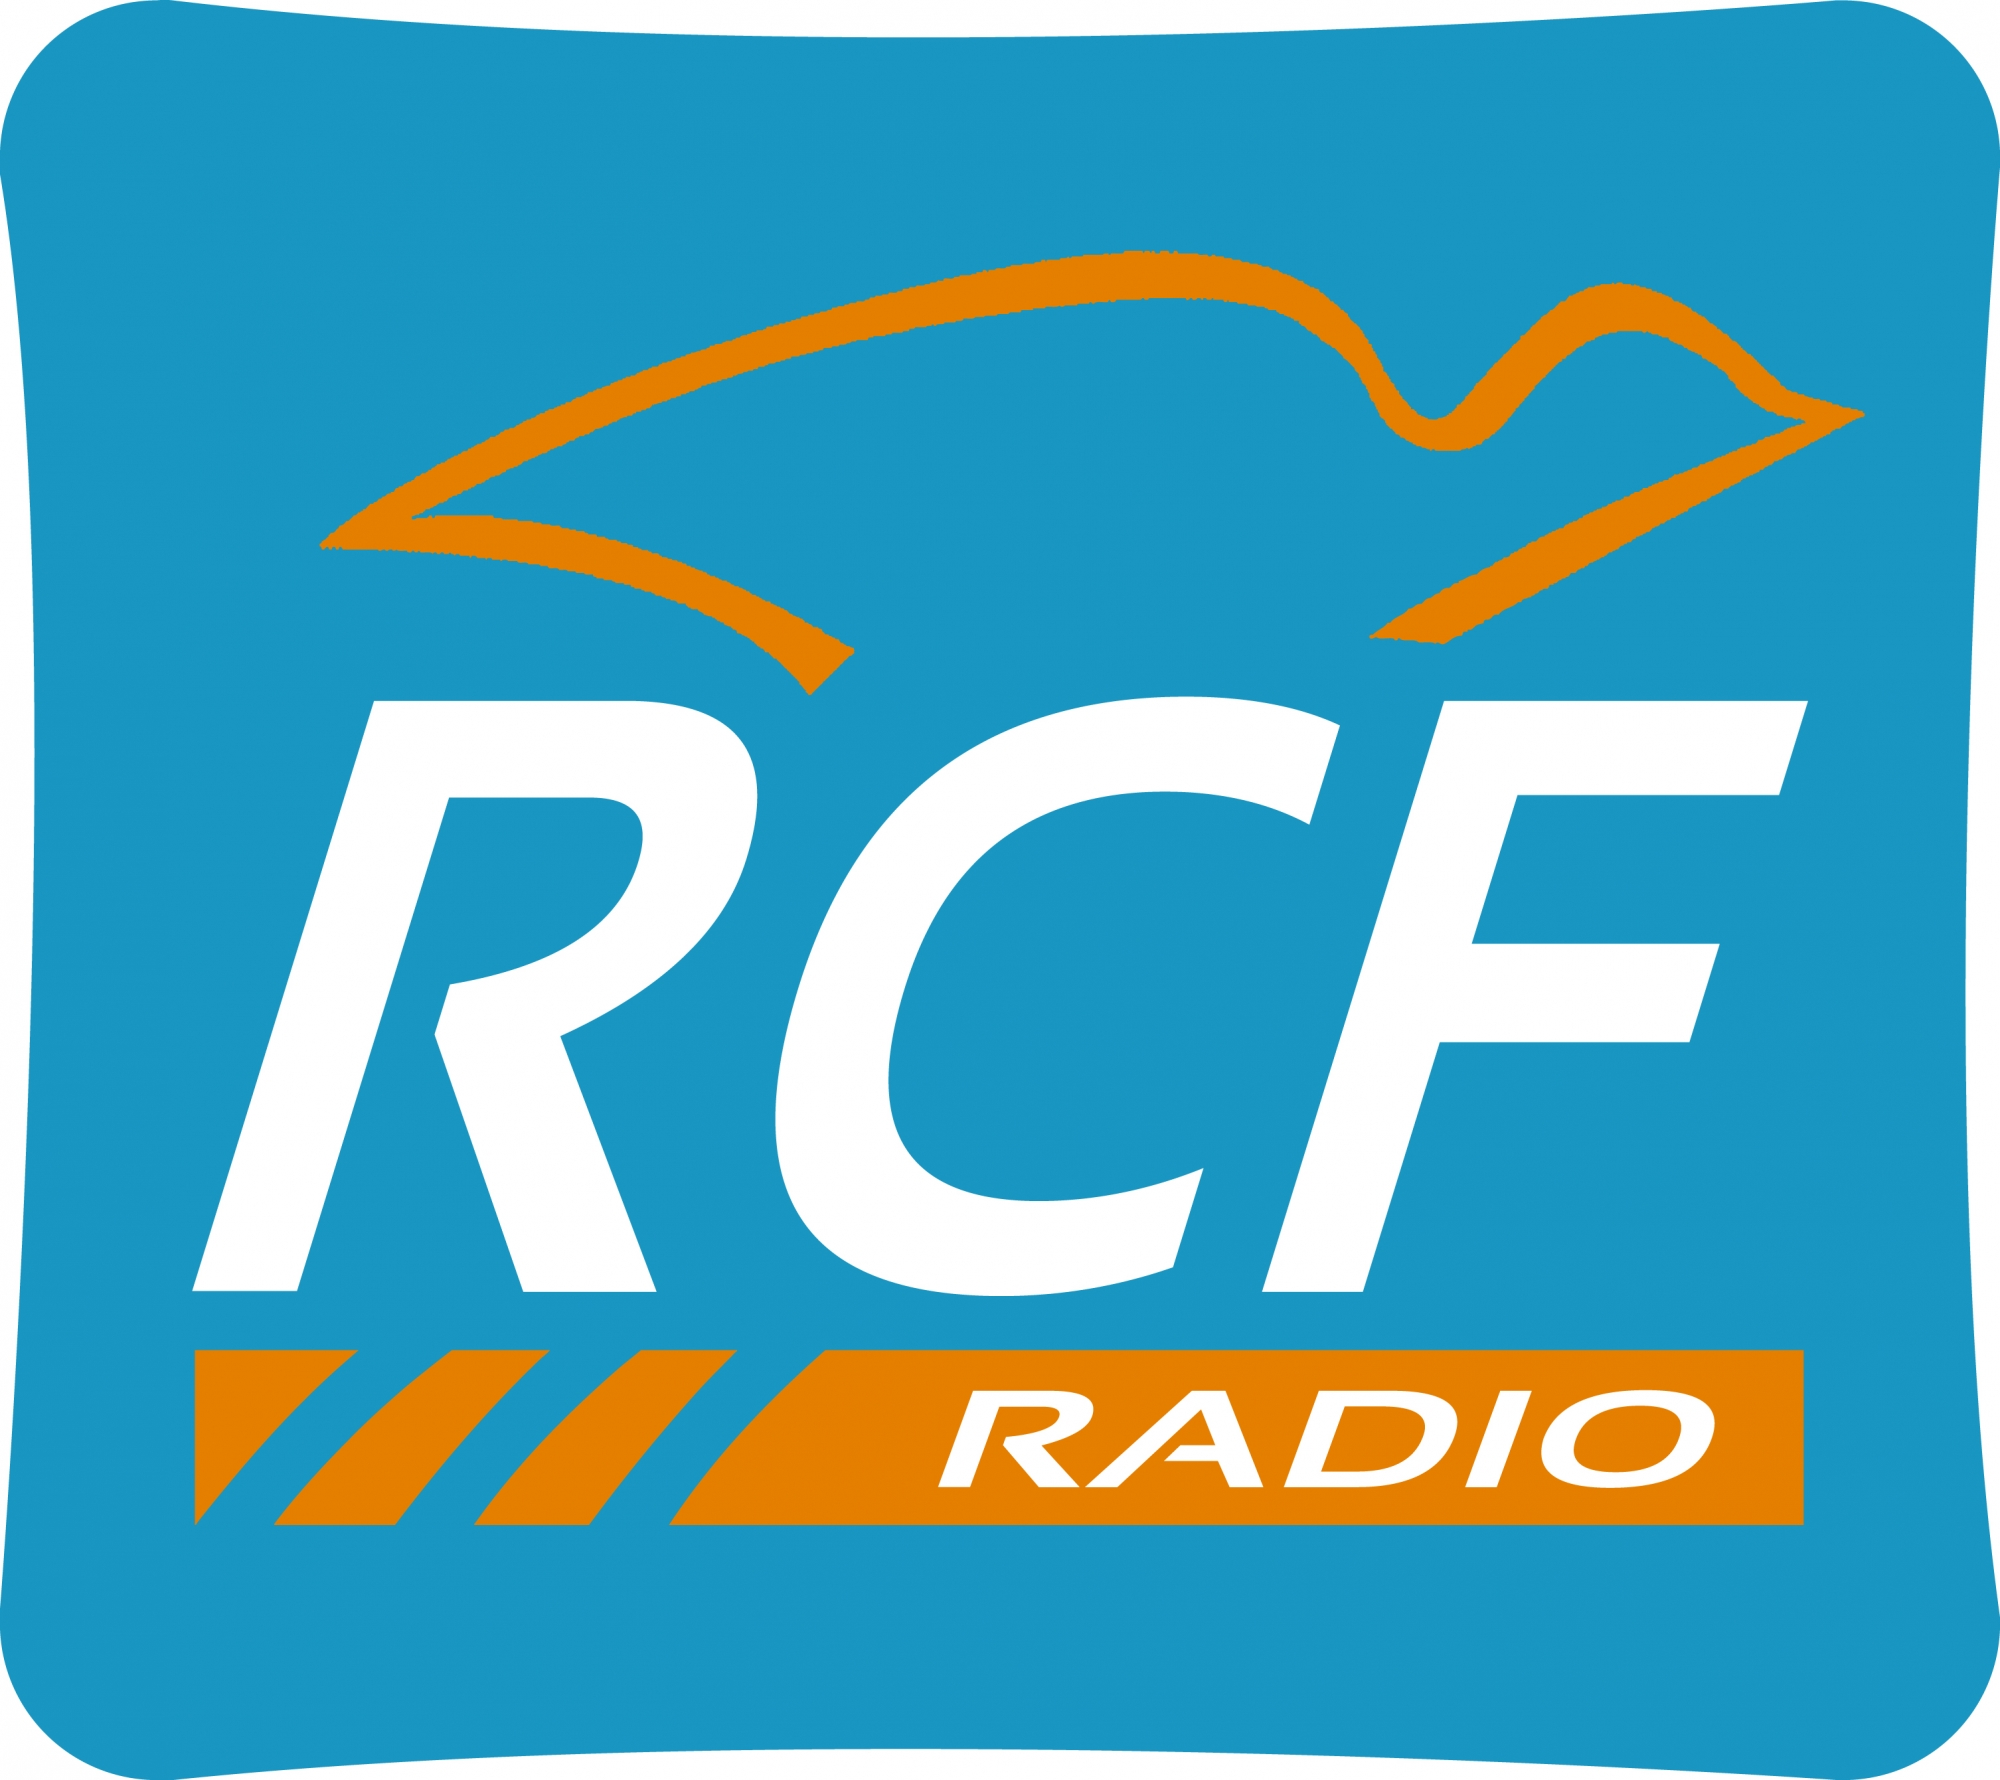 rcf_radio_national_avec_fond